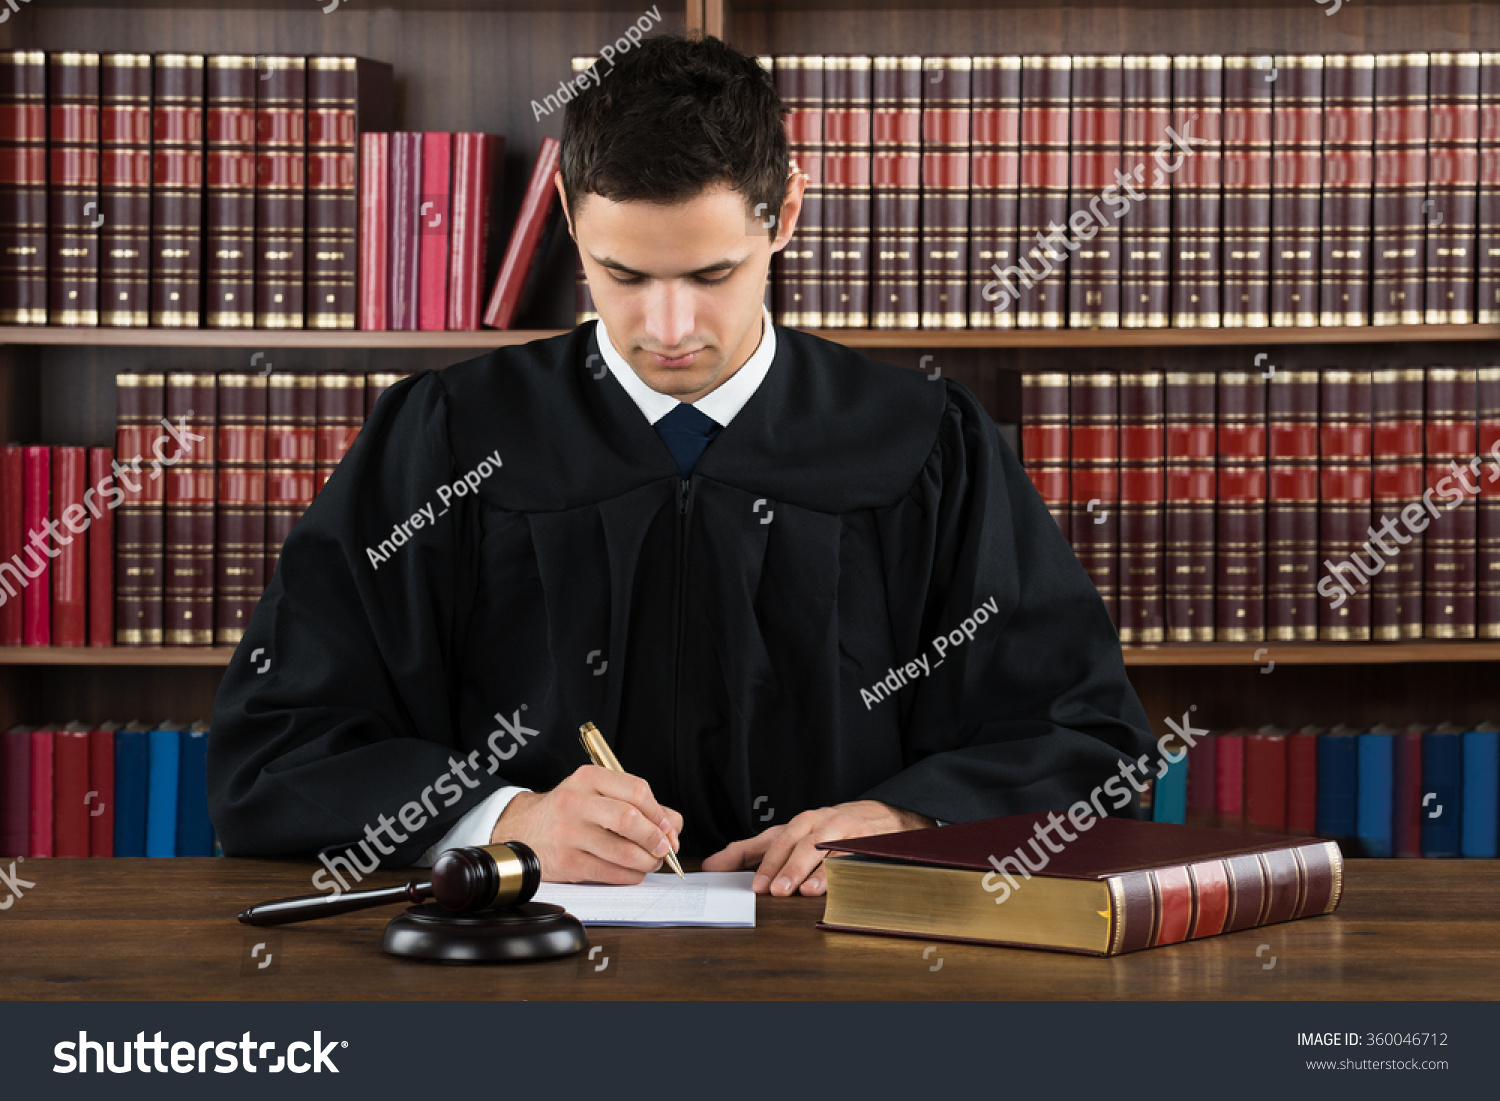 Young Male Judge Making Legal Documents At Desk Against Bookshelf In Courtroom